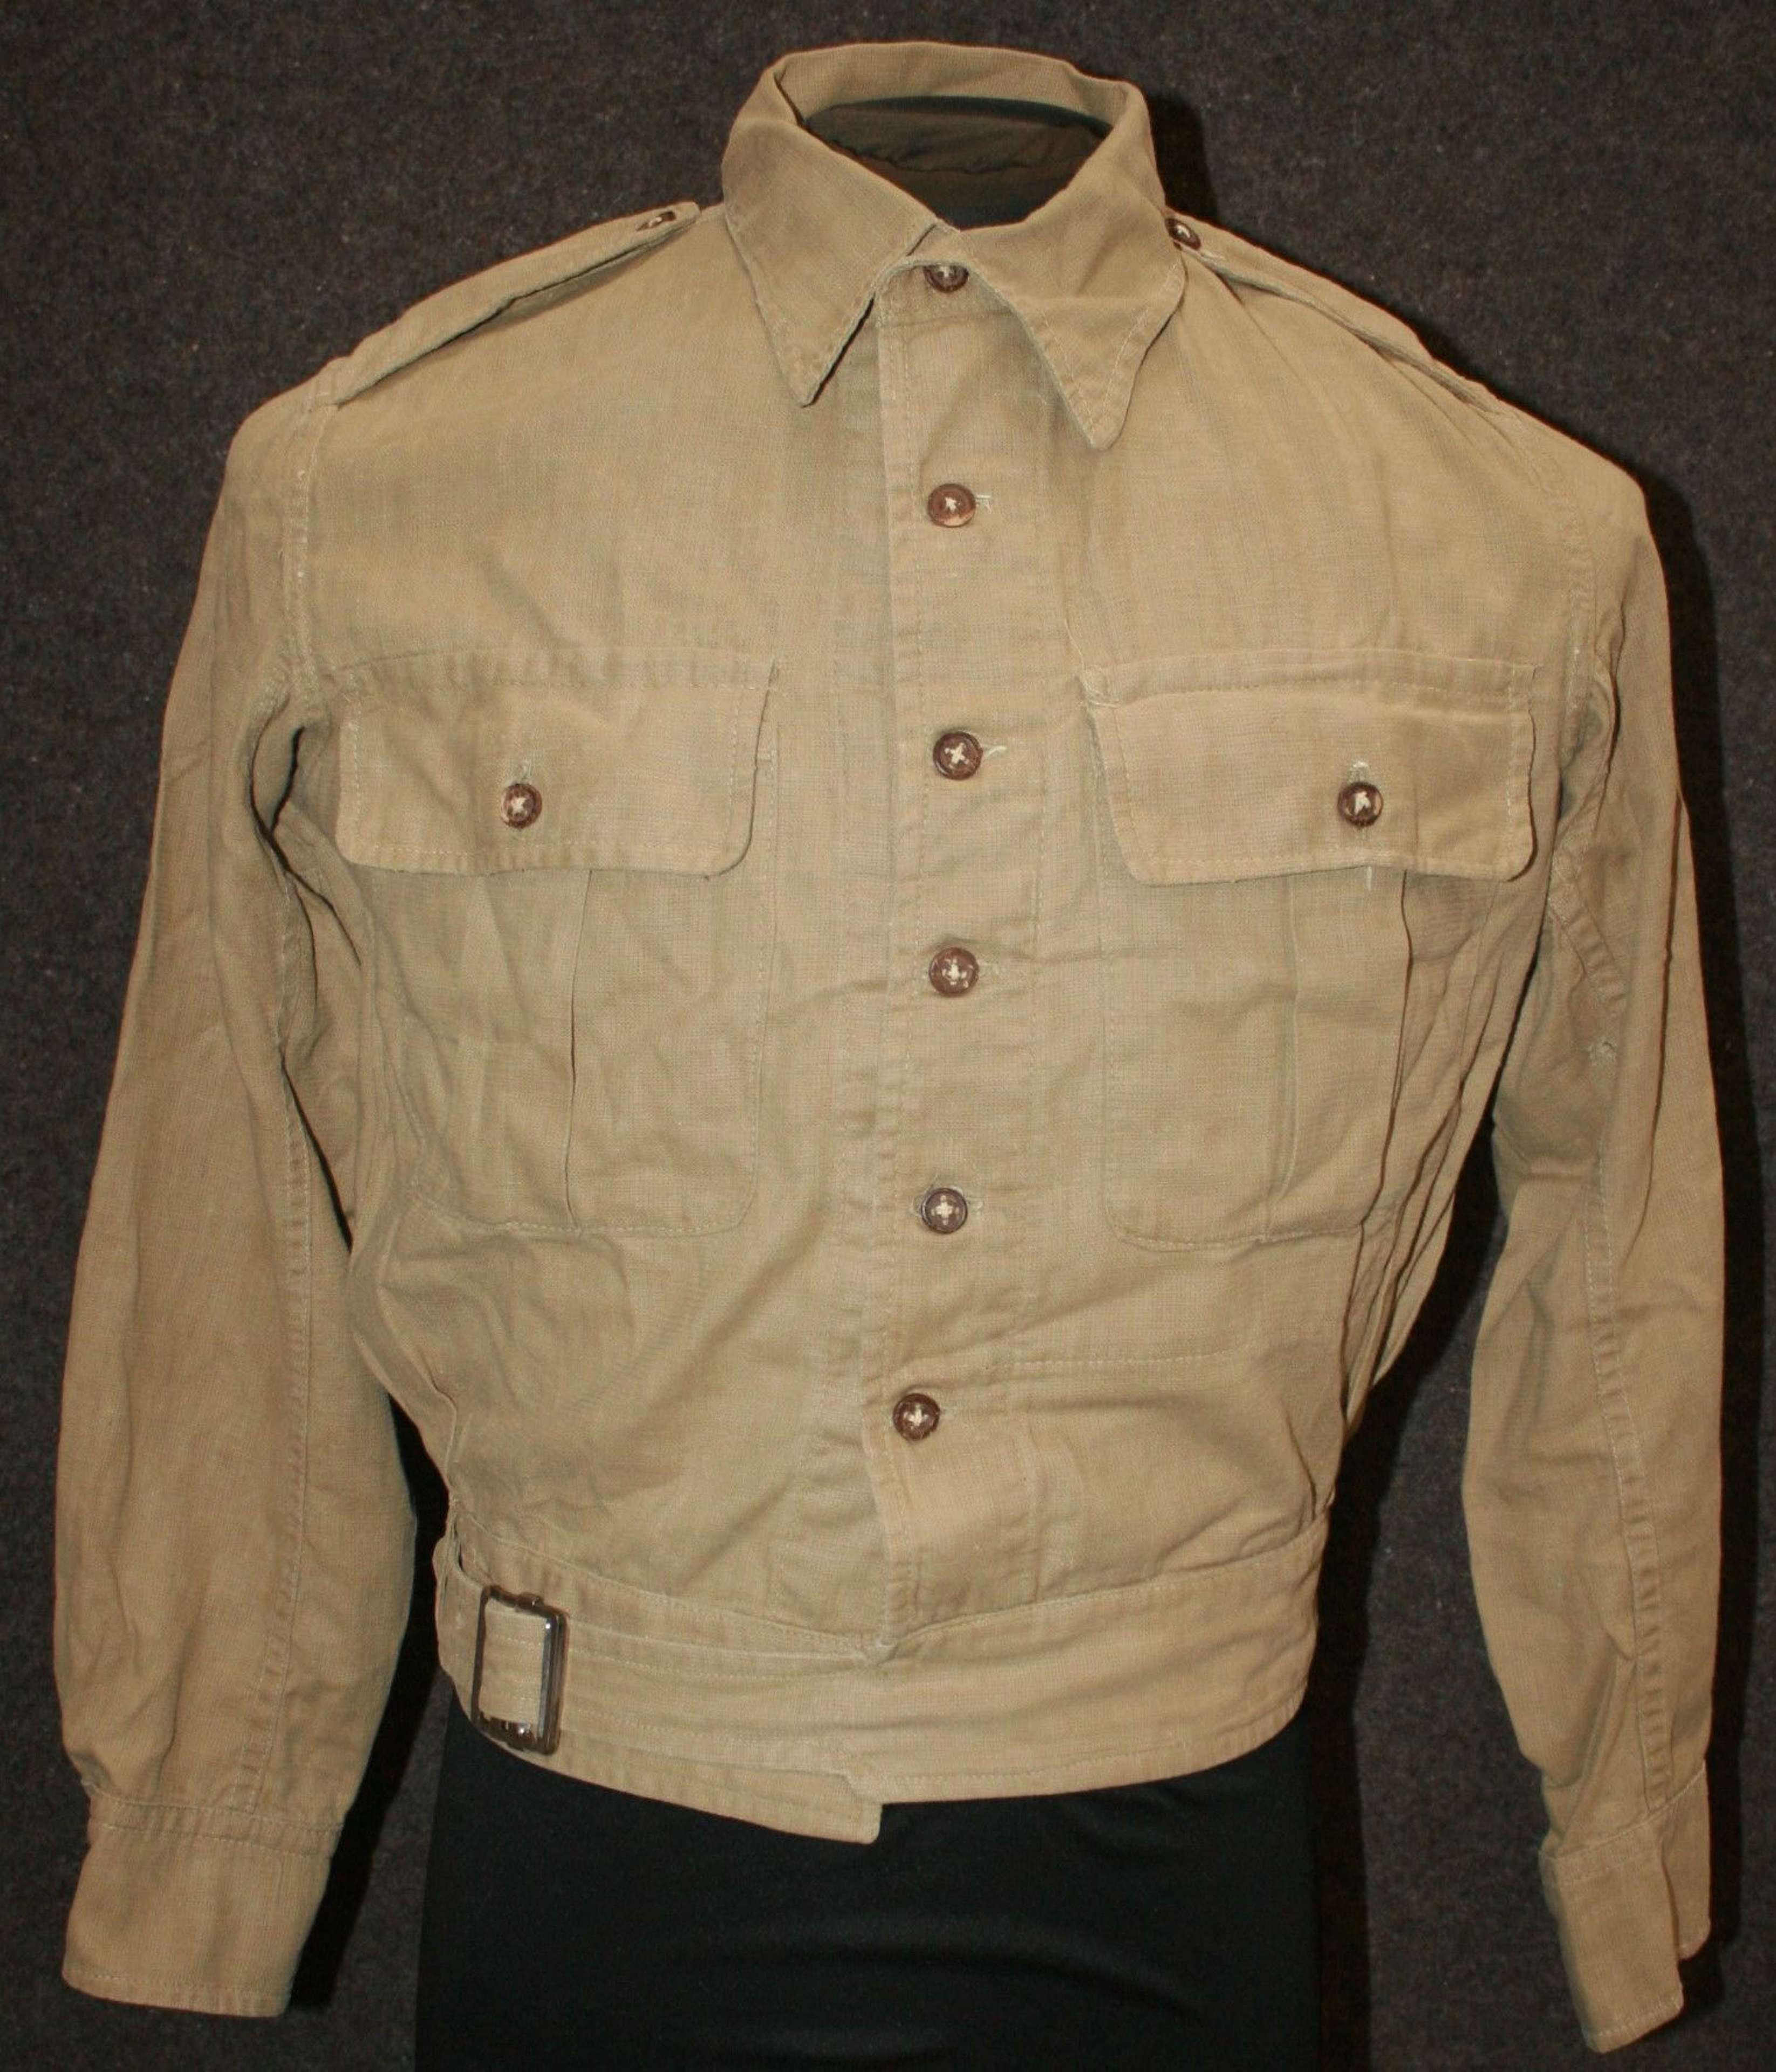 A TAN BATTLE DRESS BLOUSE JACKET